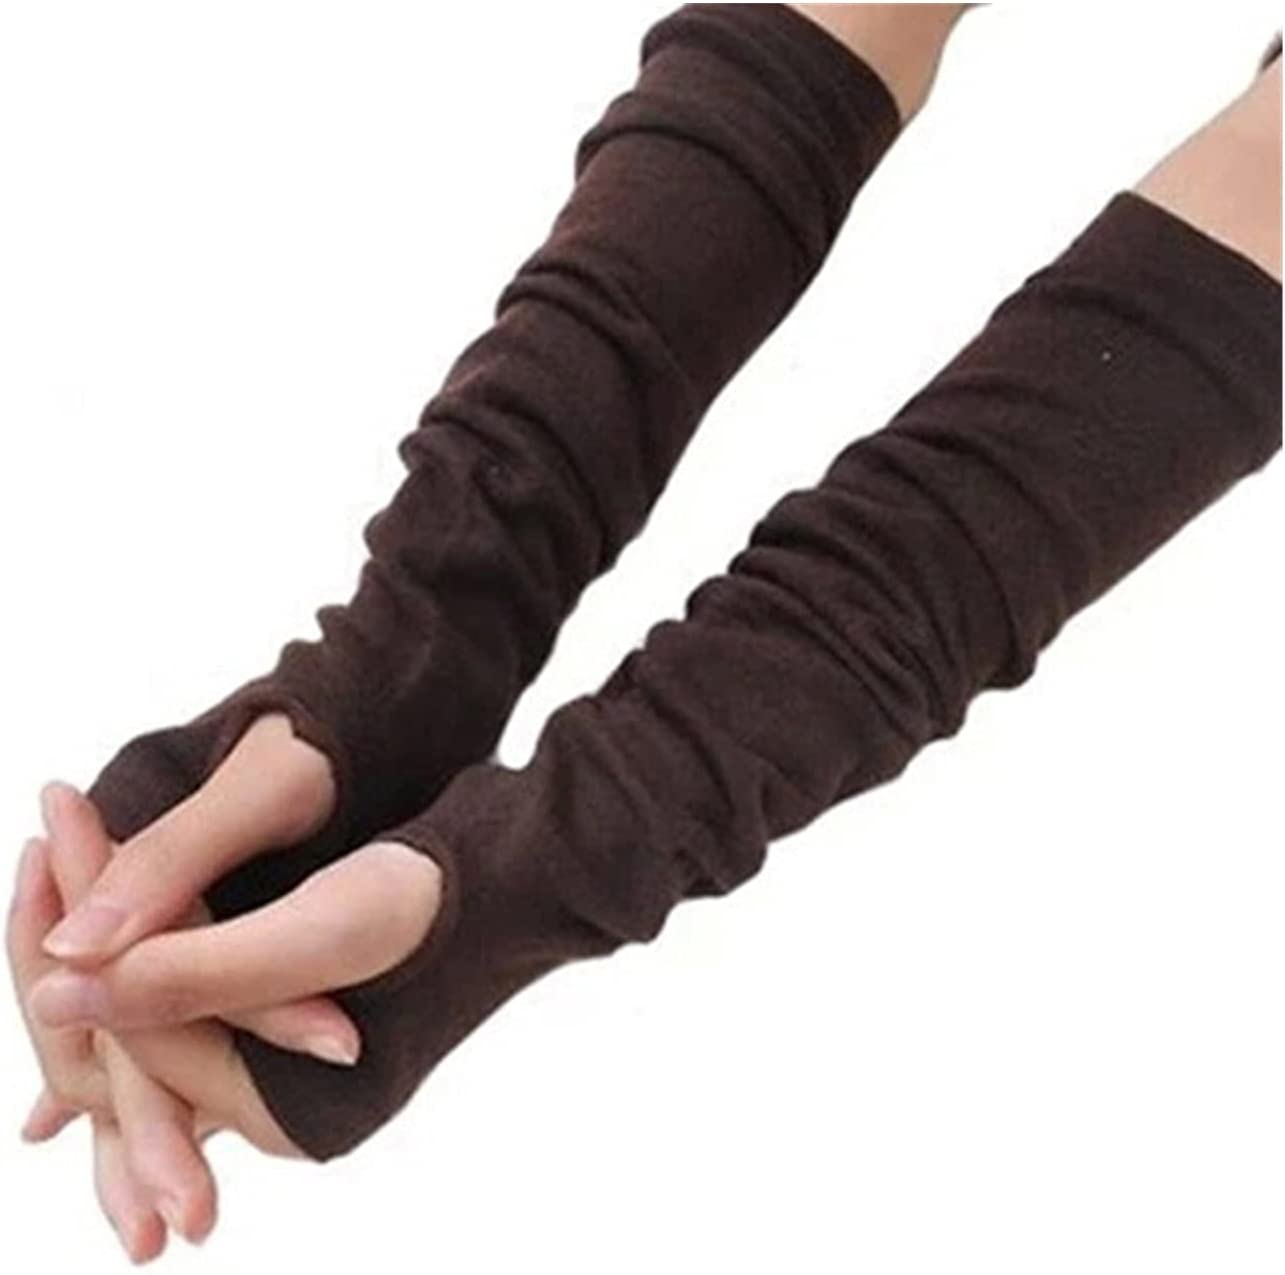 CHHNGPON Bridal Gloves Anime Glove Cosplay Mitten Oversleeve Man Women Fashion Sun Block Keep Warm Cuff Knitted Long Fingerless Gloves Arm Sleeve (Color : Light Grey, Gloves Size : One Size)